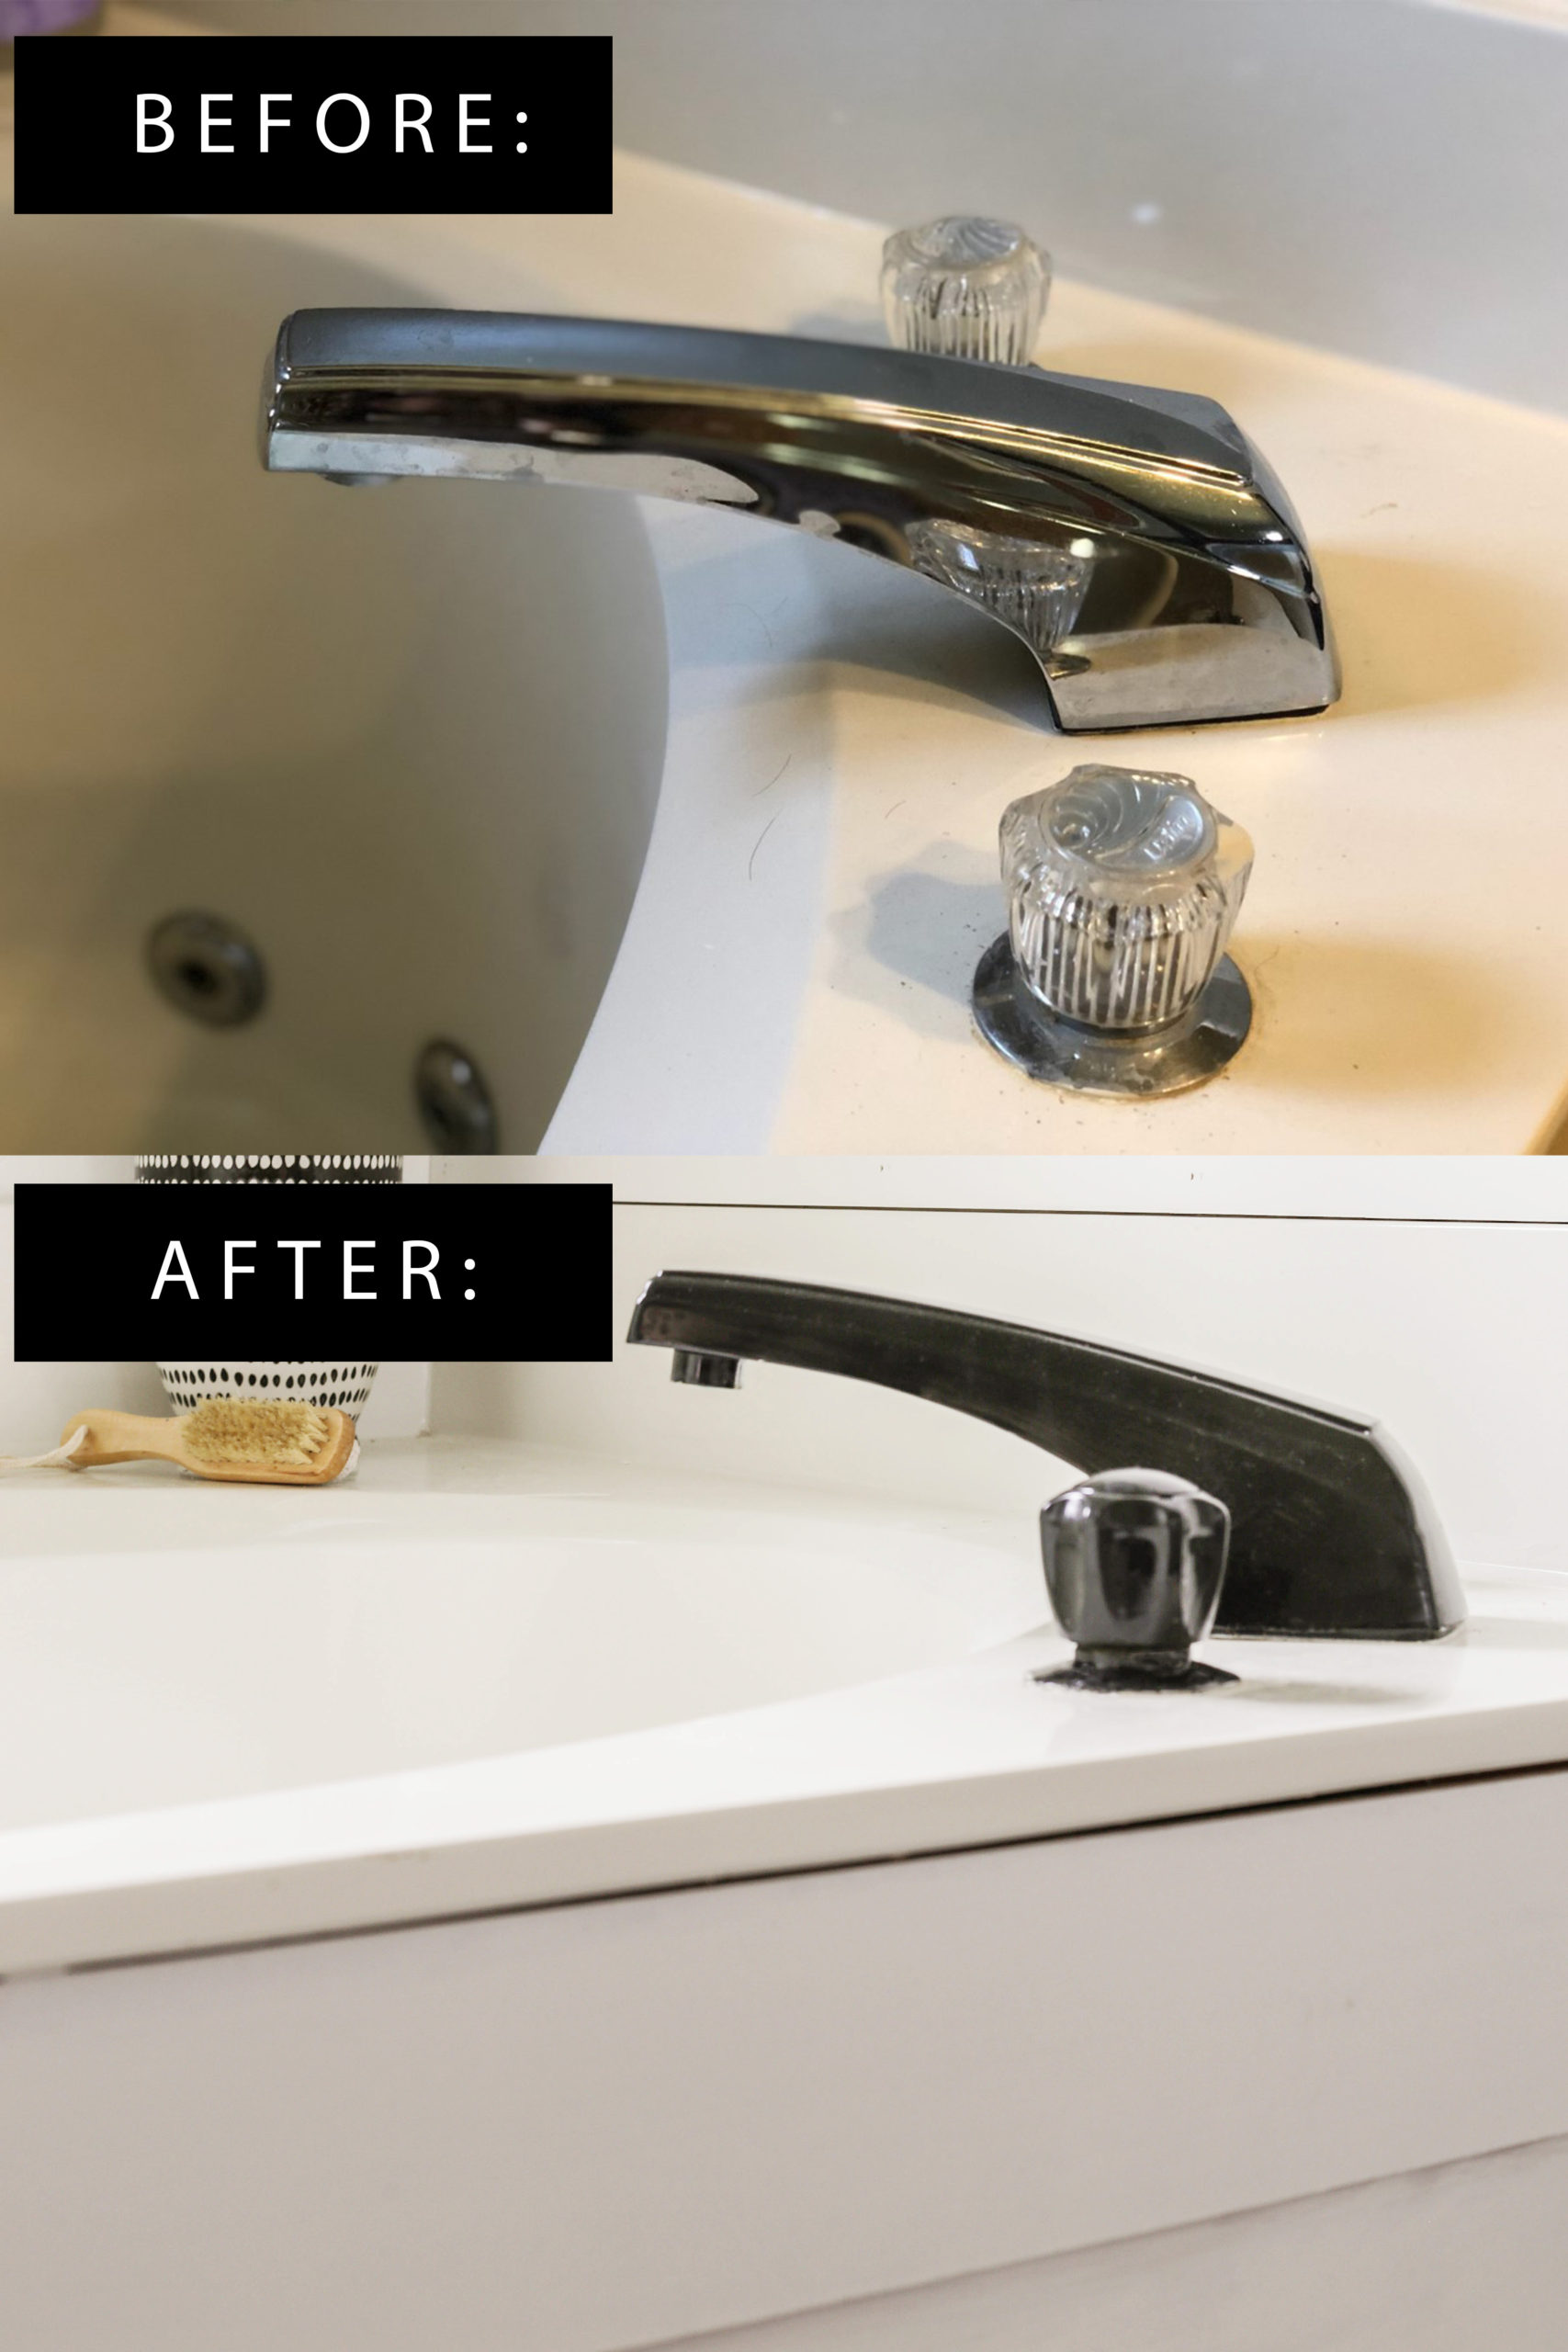 Diy Faucet Transformation For Under 15, How To Paint Bathroom Fixtures